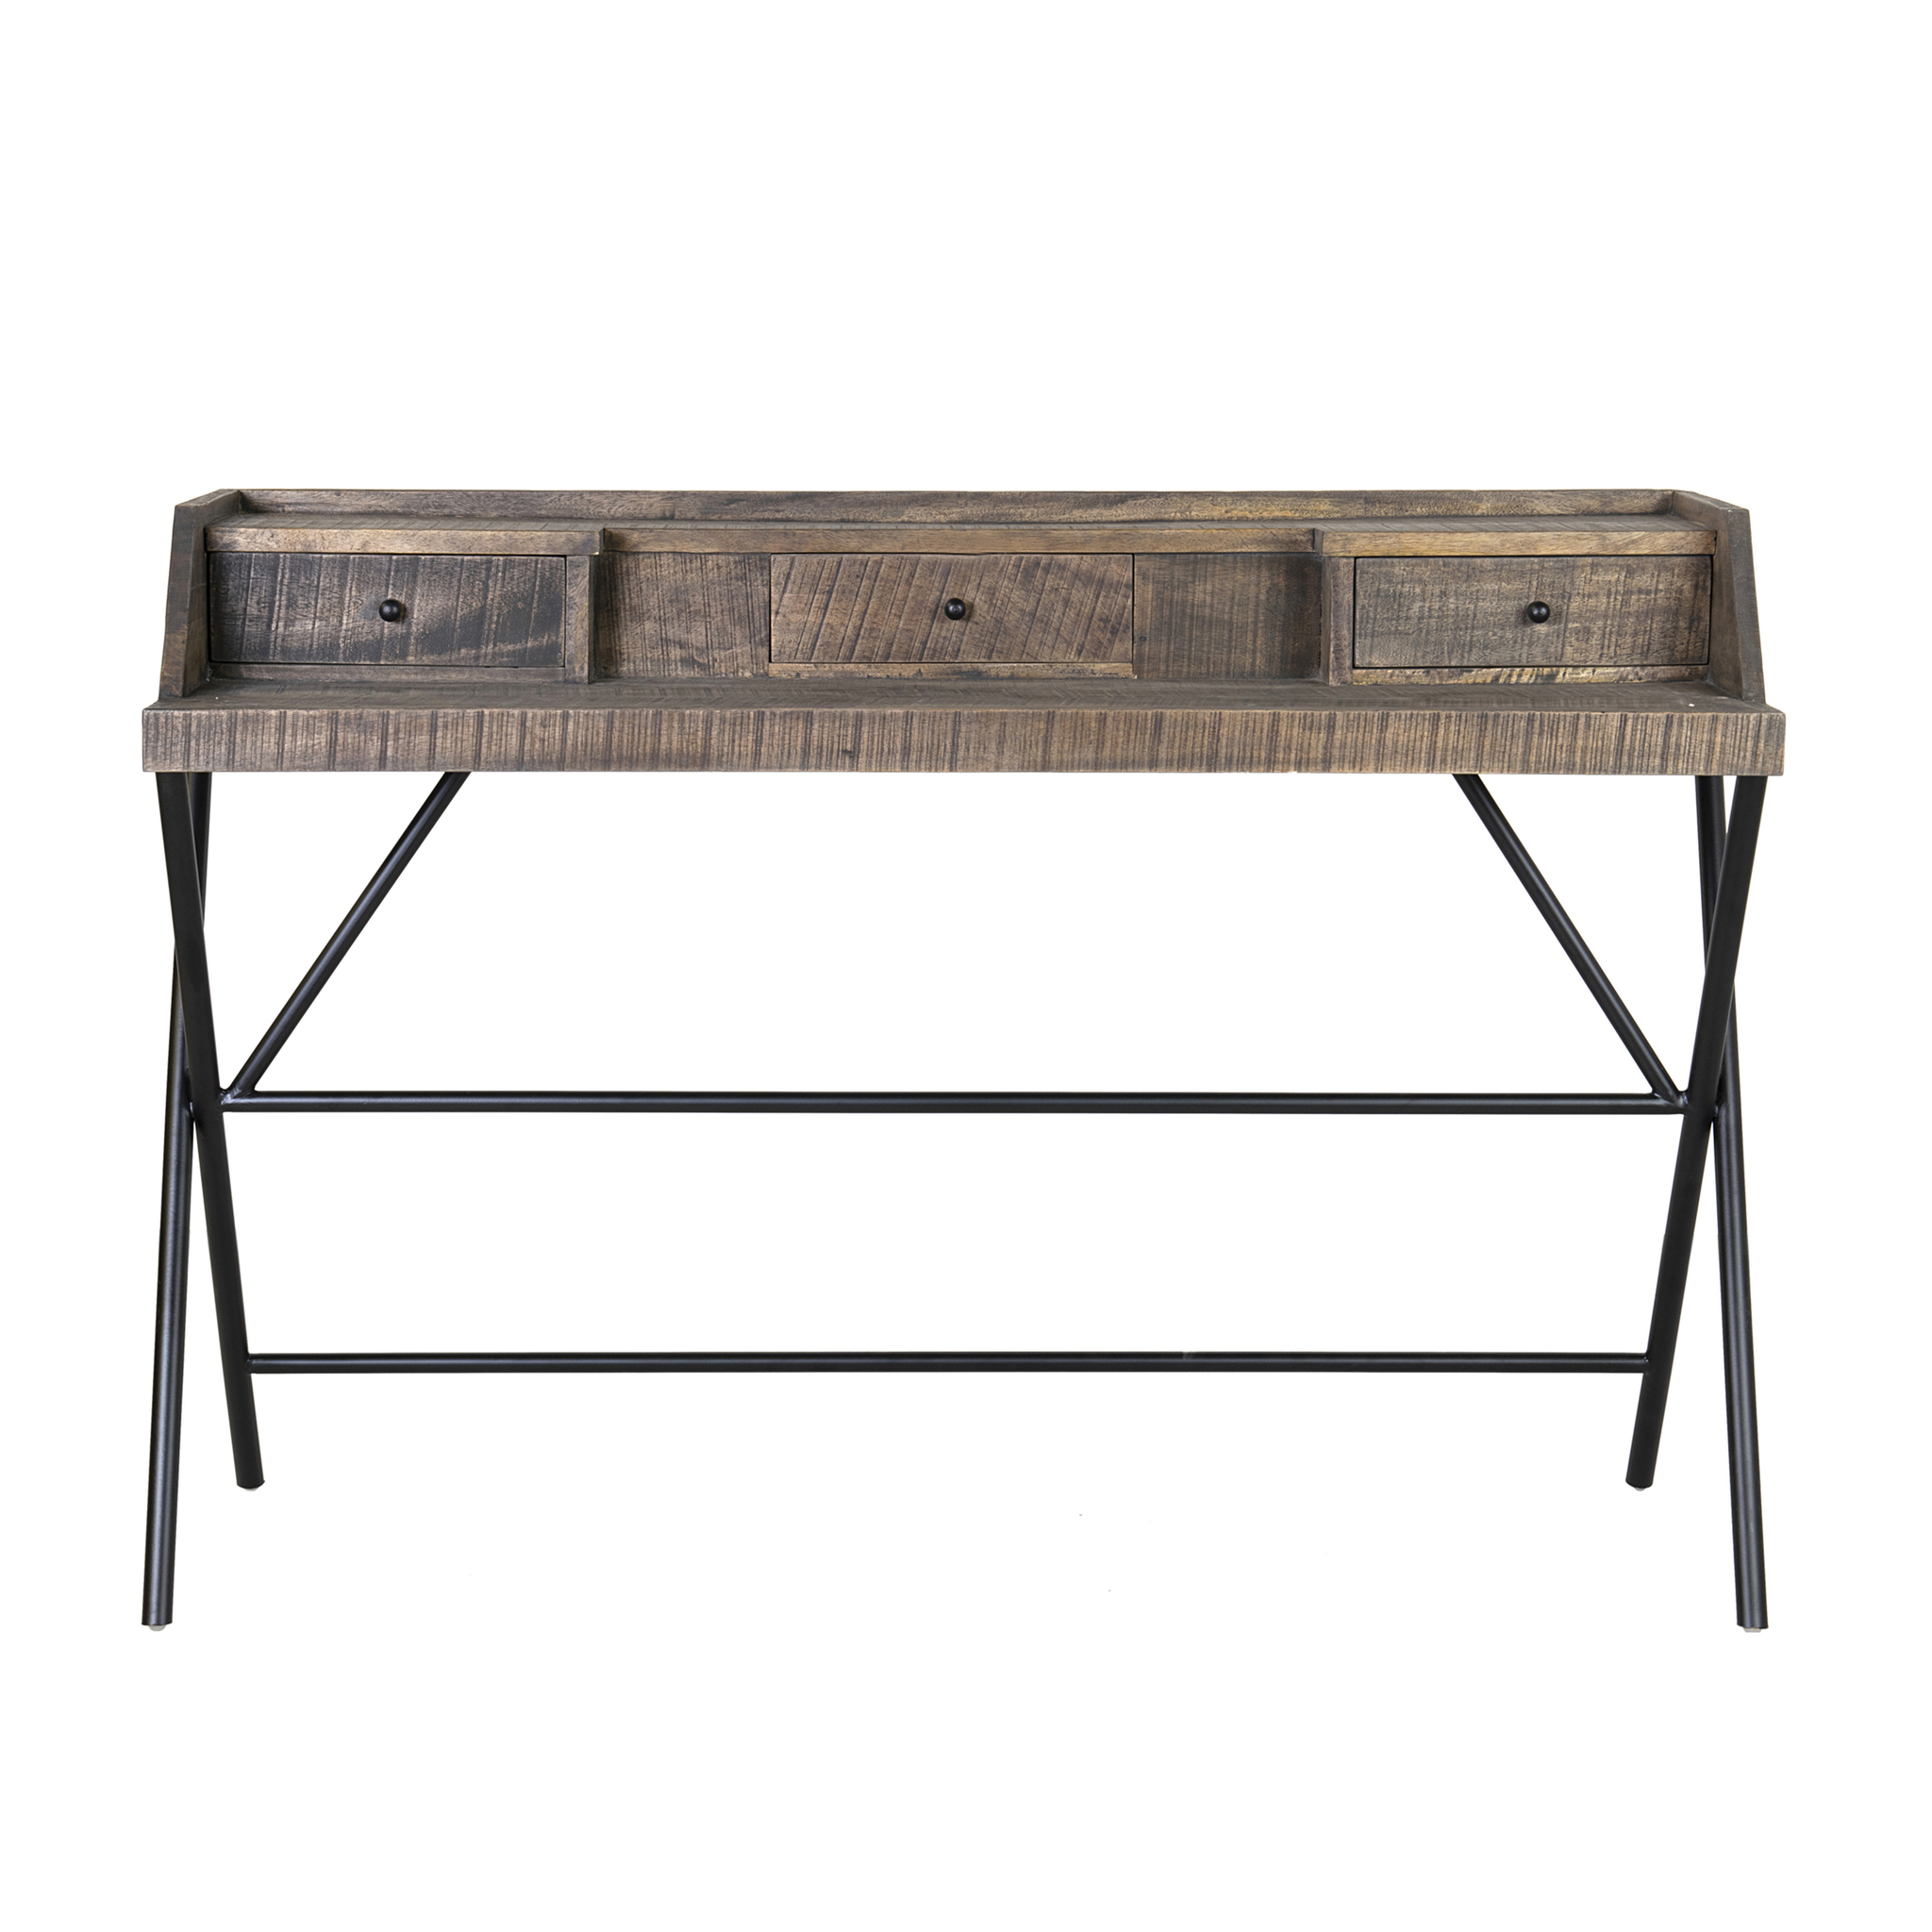 LS) Gabriel Campaign Style Desk With Metal Base And 3 ...